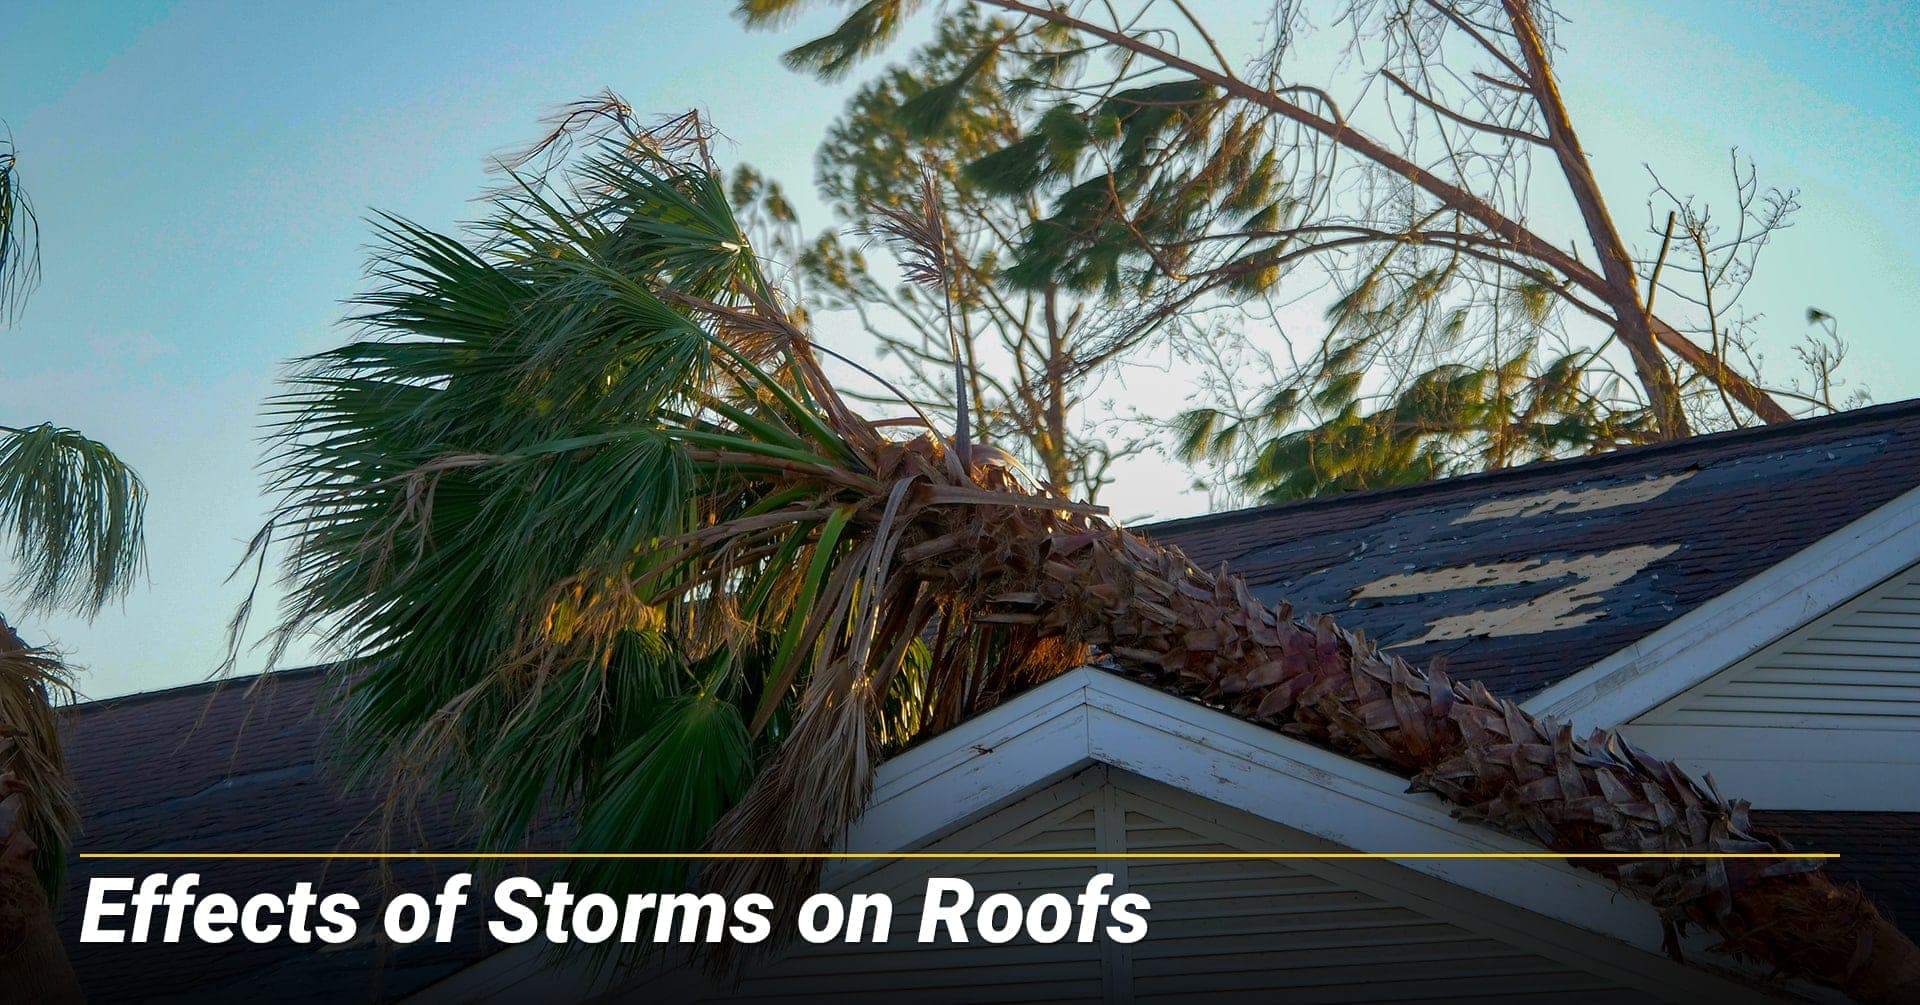 Effects of Storms on Roofs, storm can cause damage to your roof